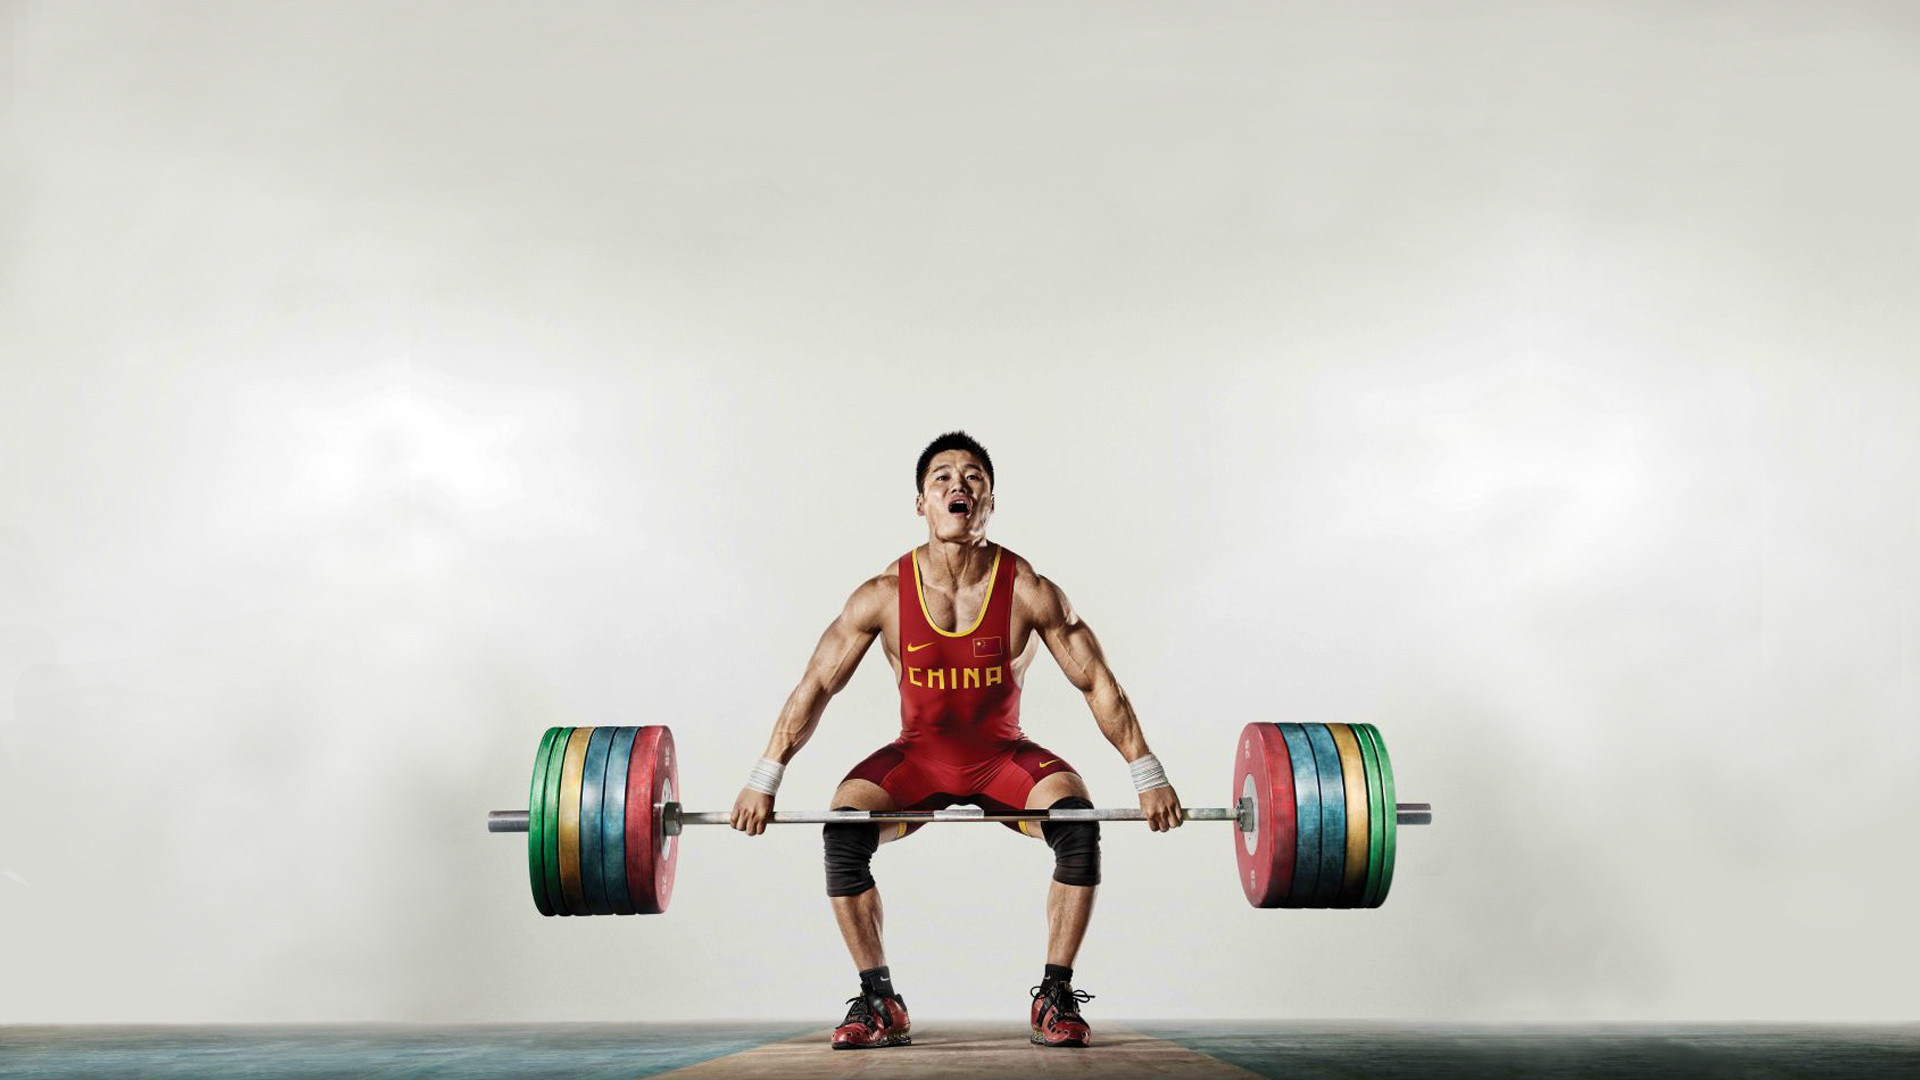 Wallpapers For Olympic Olympic Weight Lifting Wallpaper